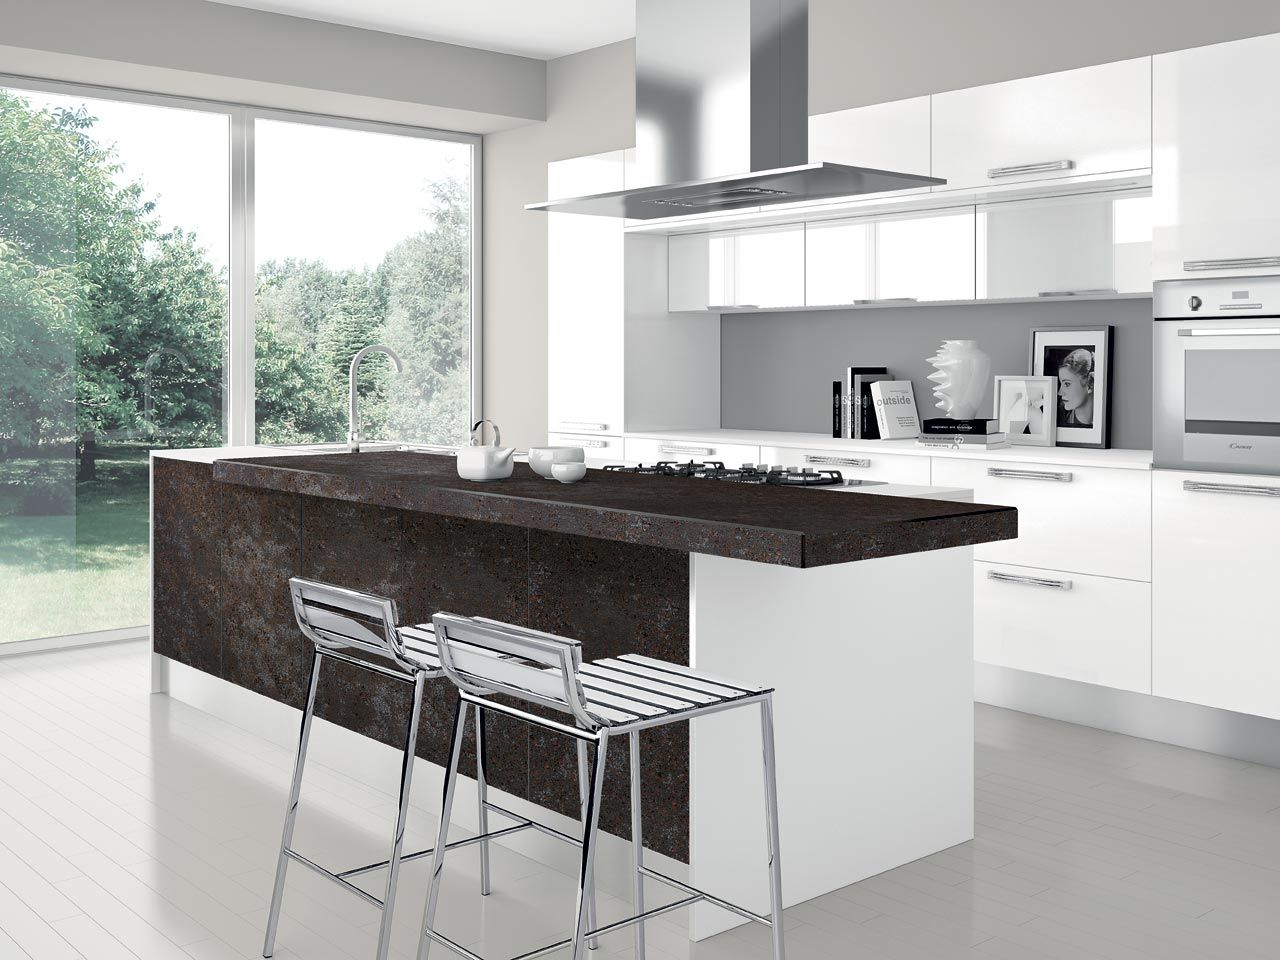 Cucine Moderne Con Isola Lube.Nilde Gres Kitchens Cucine Lube Kitchen Designs